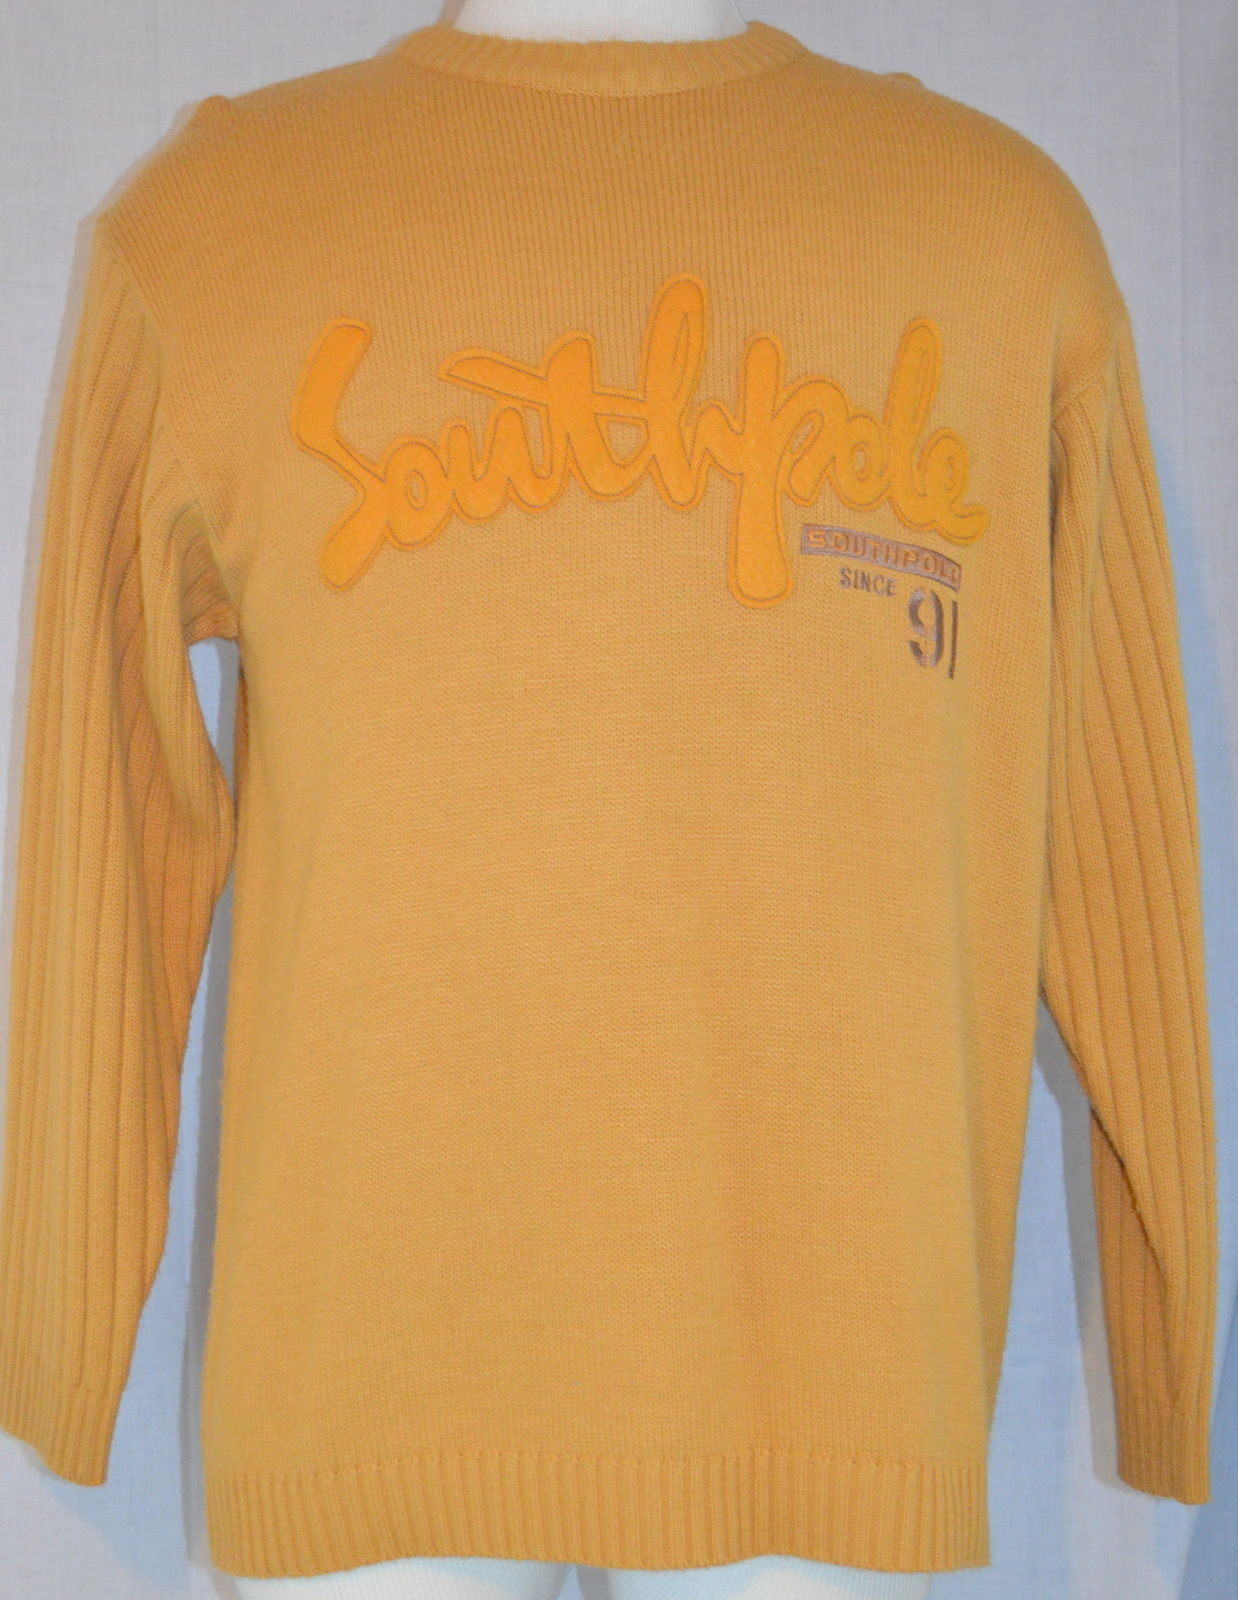 ff10efdc00 Southpole South Pole Orange Sweater Size L and similar items. S l1600